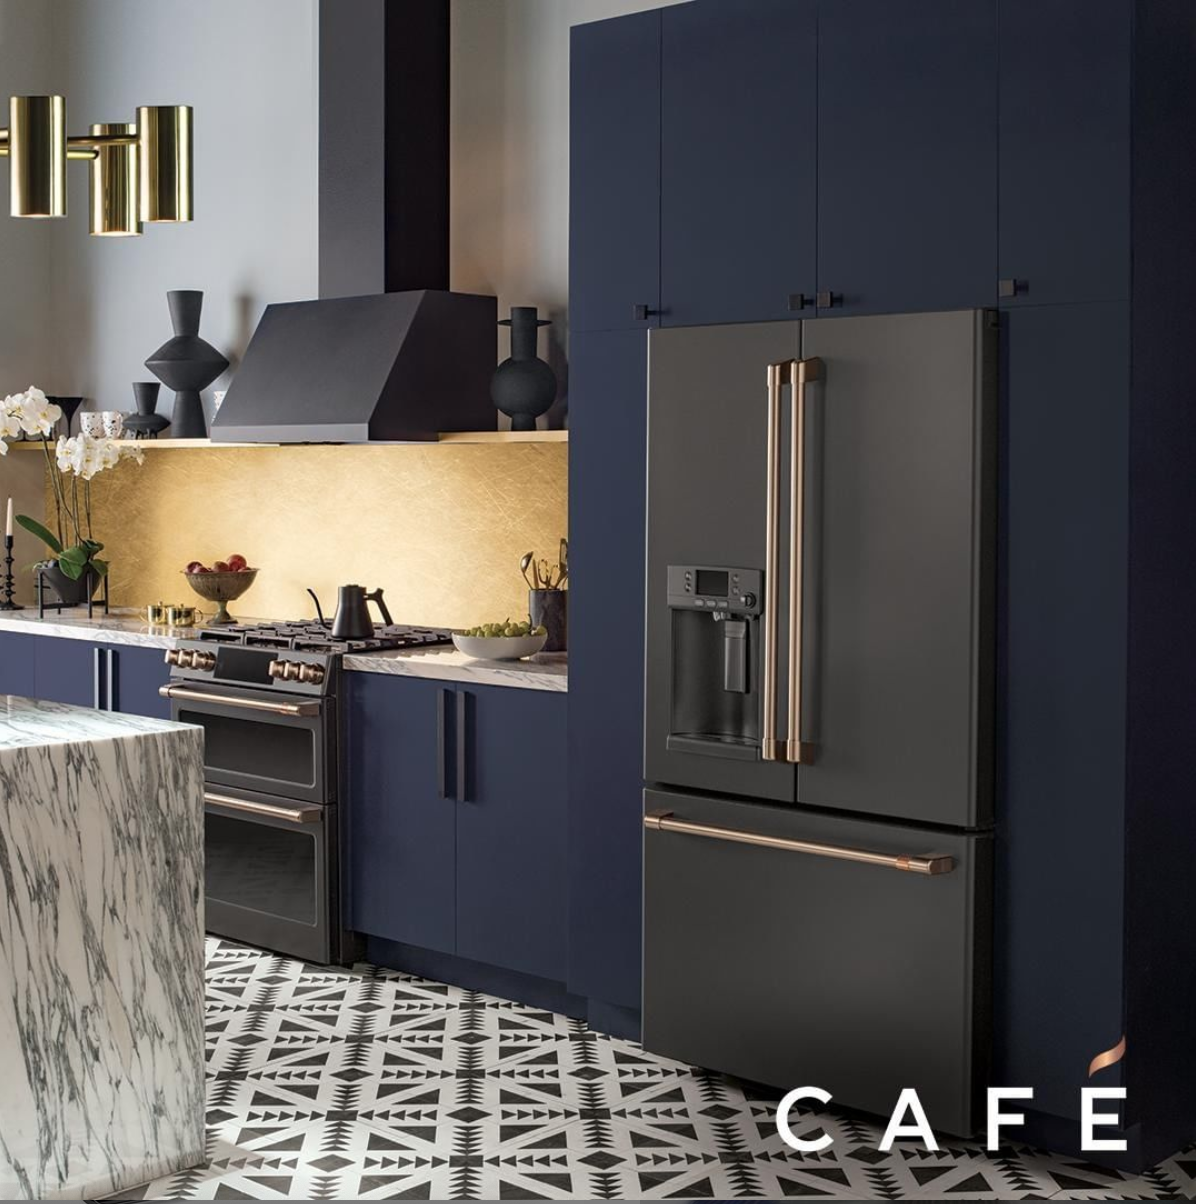 Deep navy cabinets with     Matte black appliances   from   Cafe Appliances   by GE at   KBIS